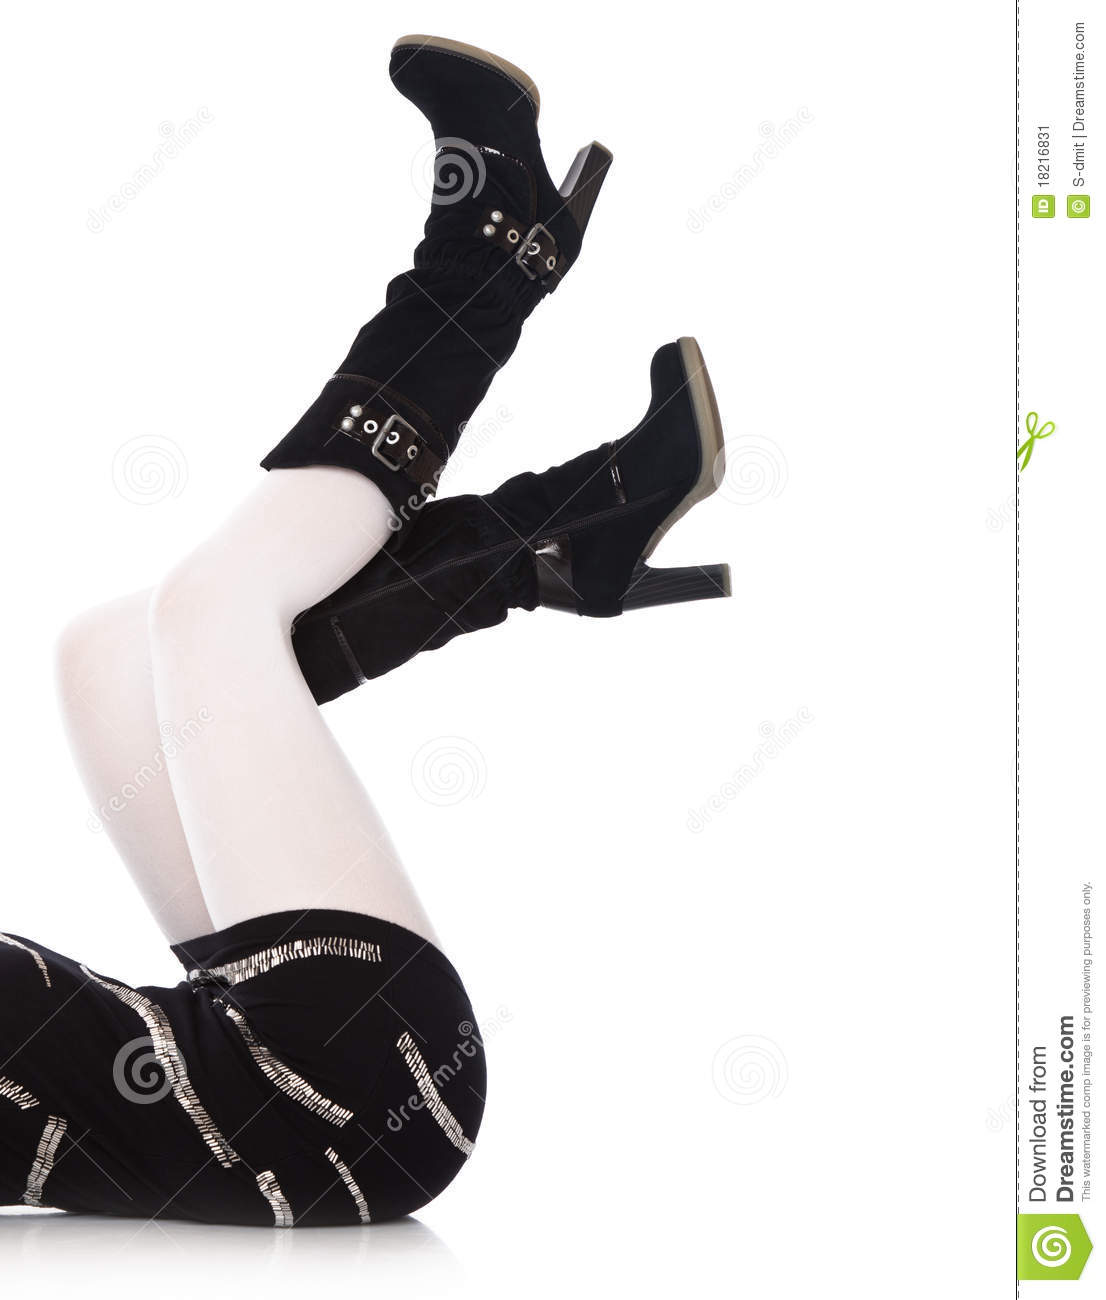 Female legs in high boots close-up